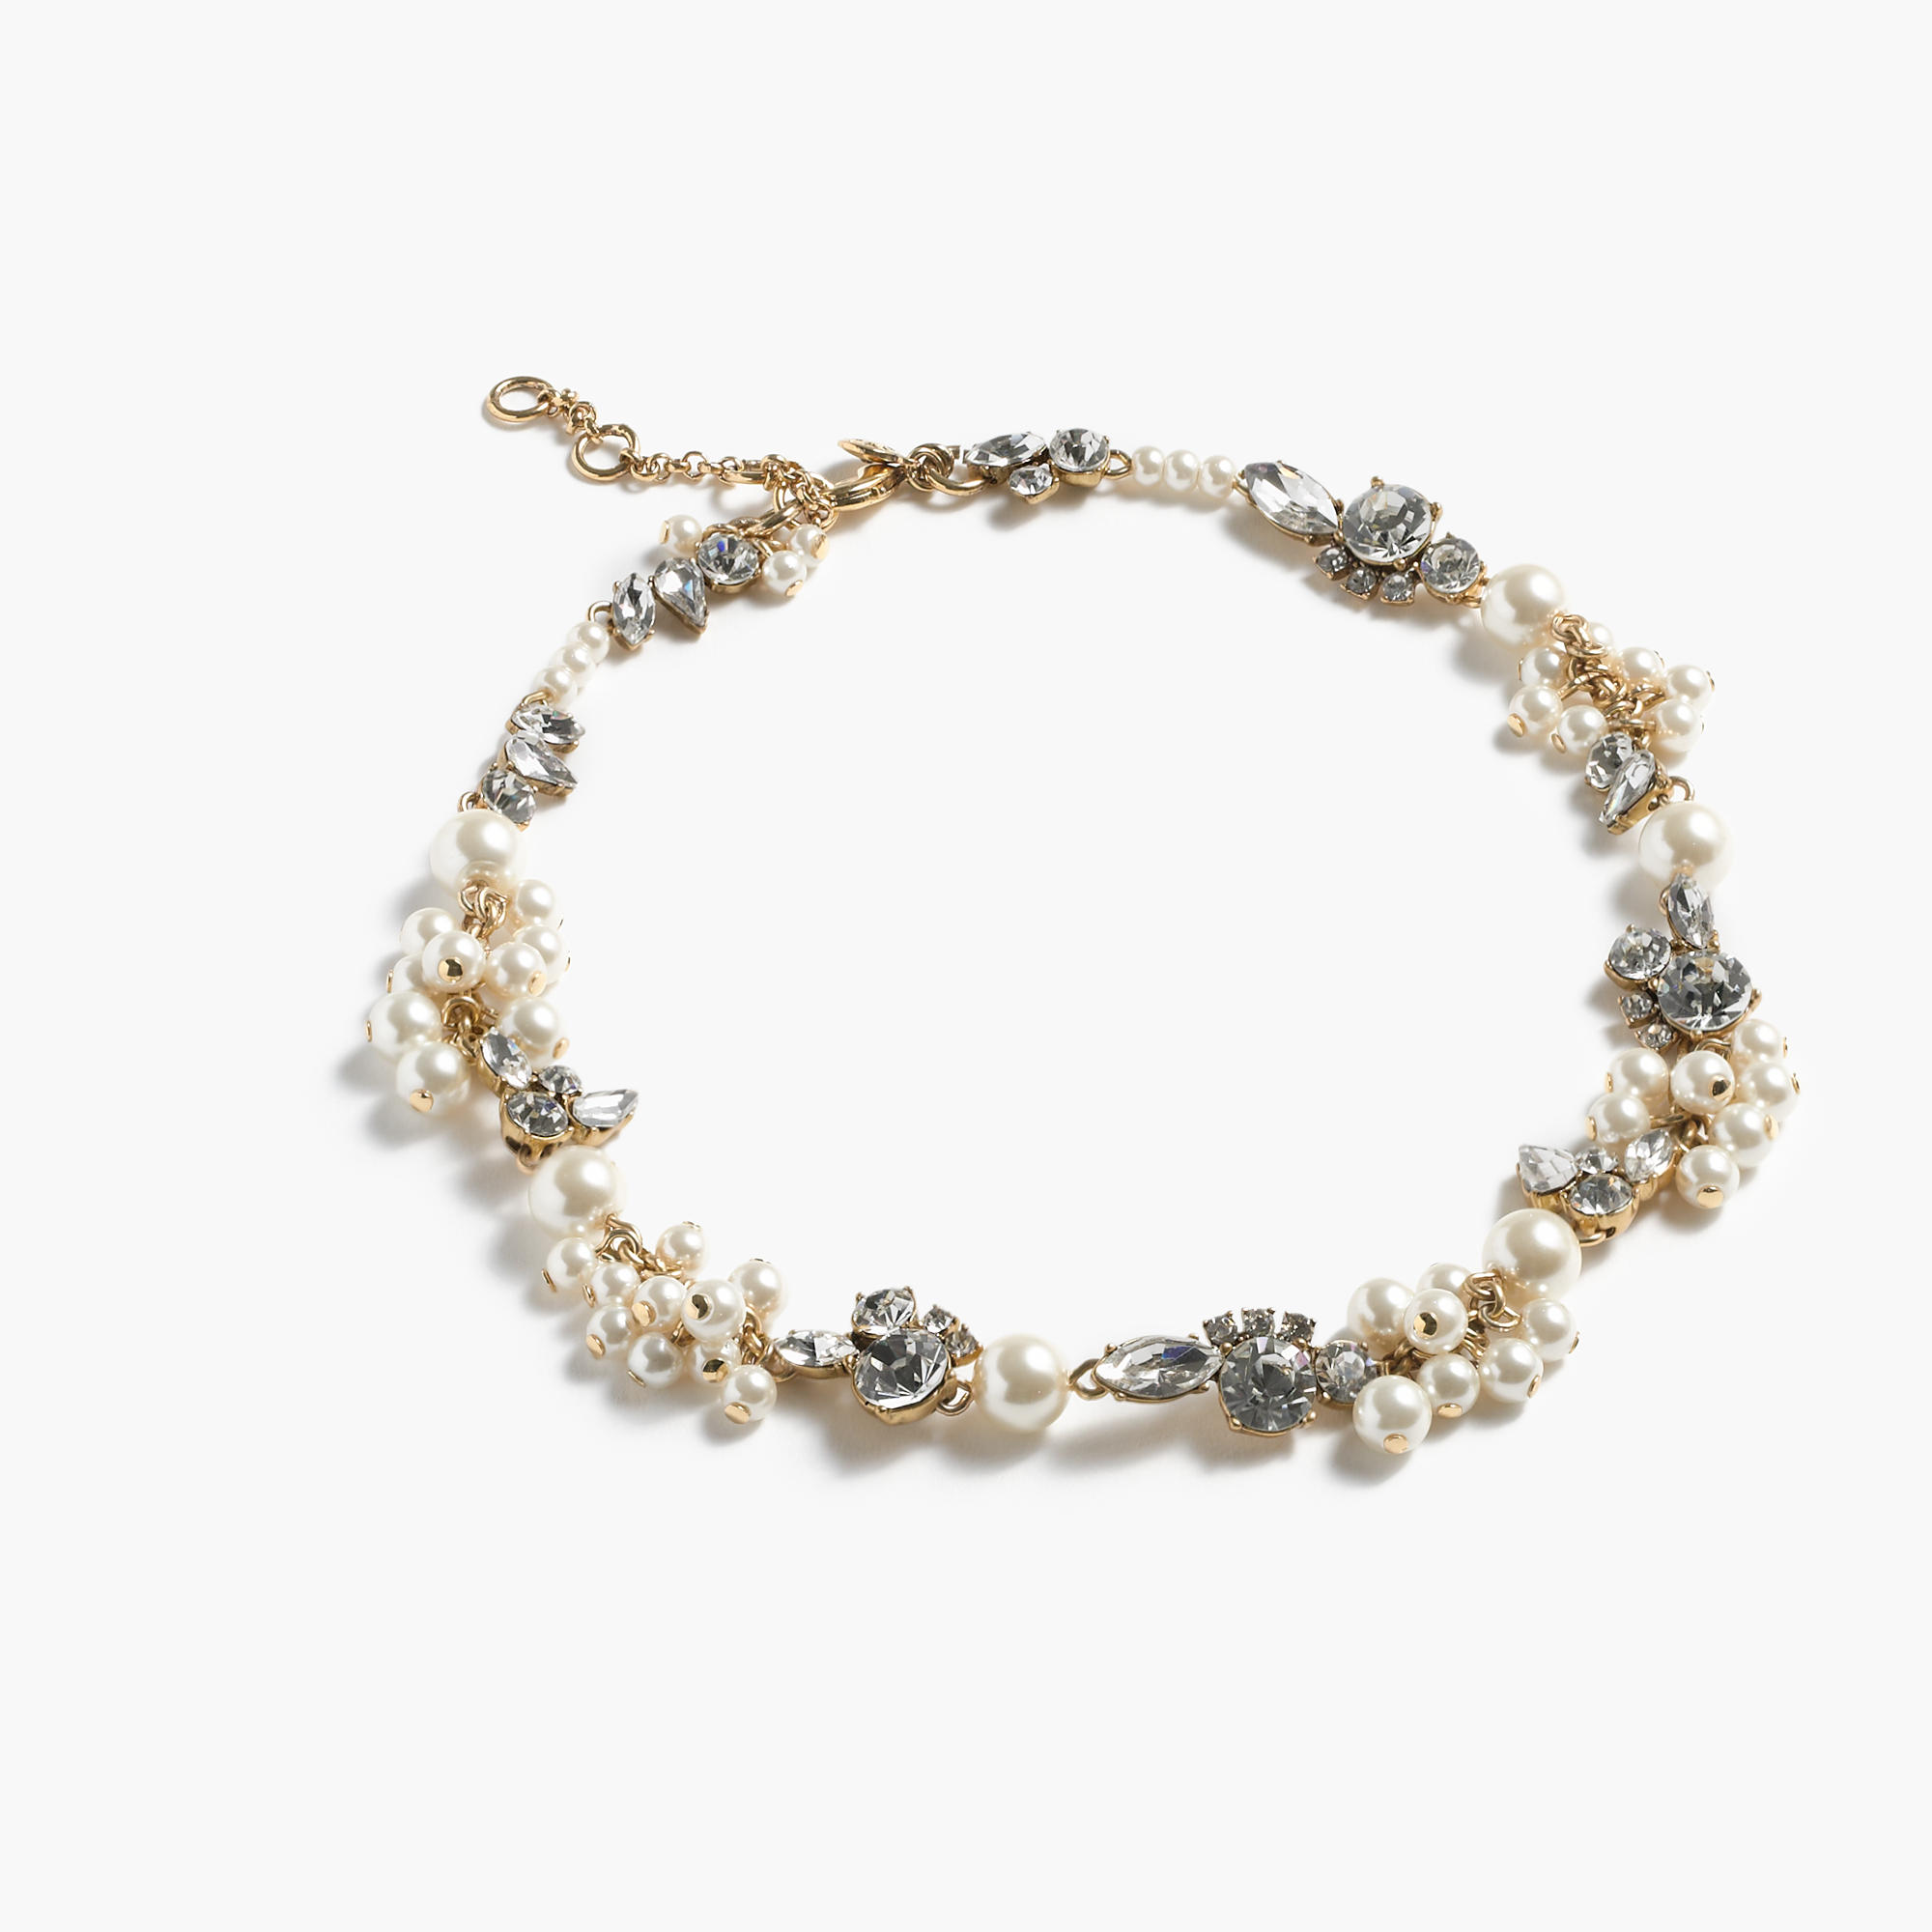 Pearl and crystal necklace j crew for J crew jewelry 2015